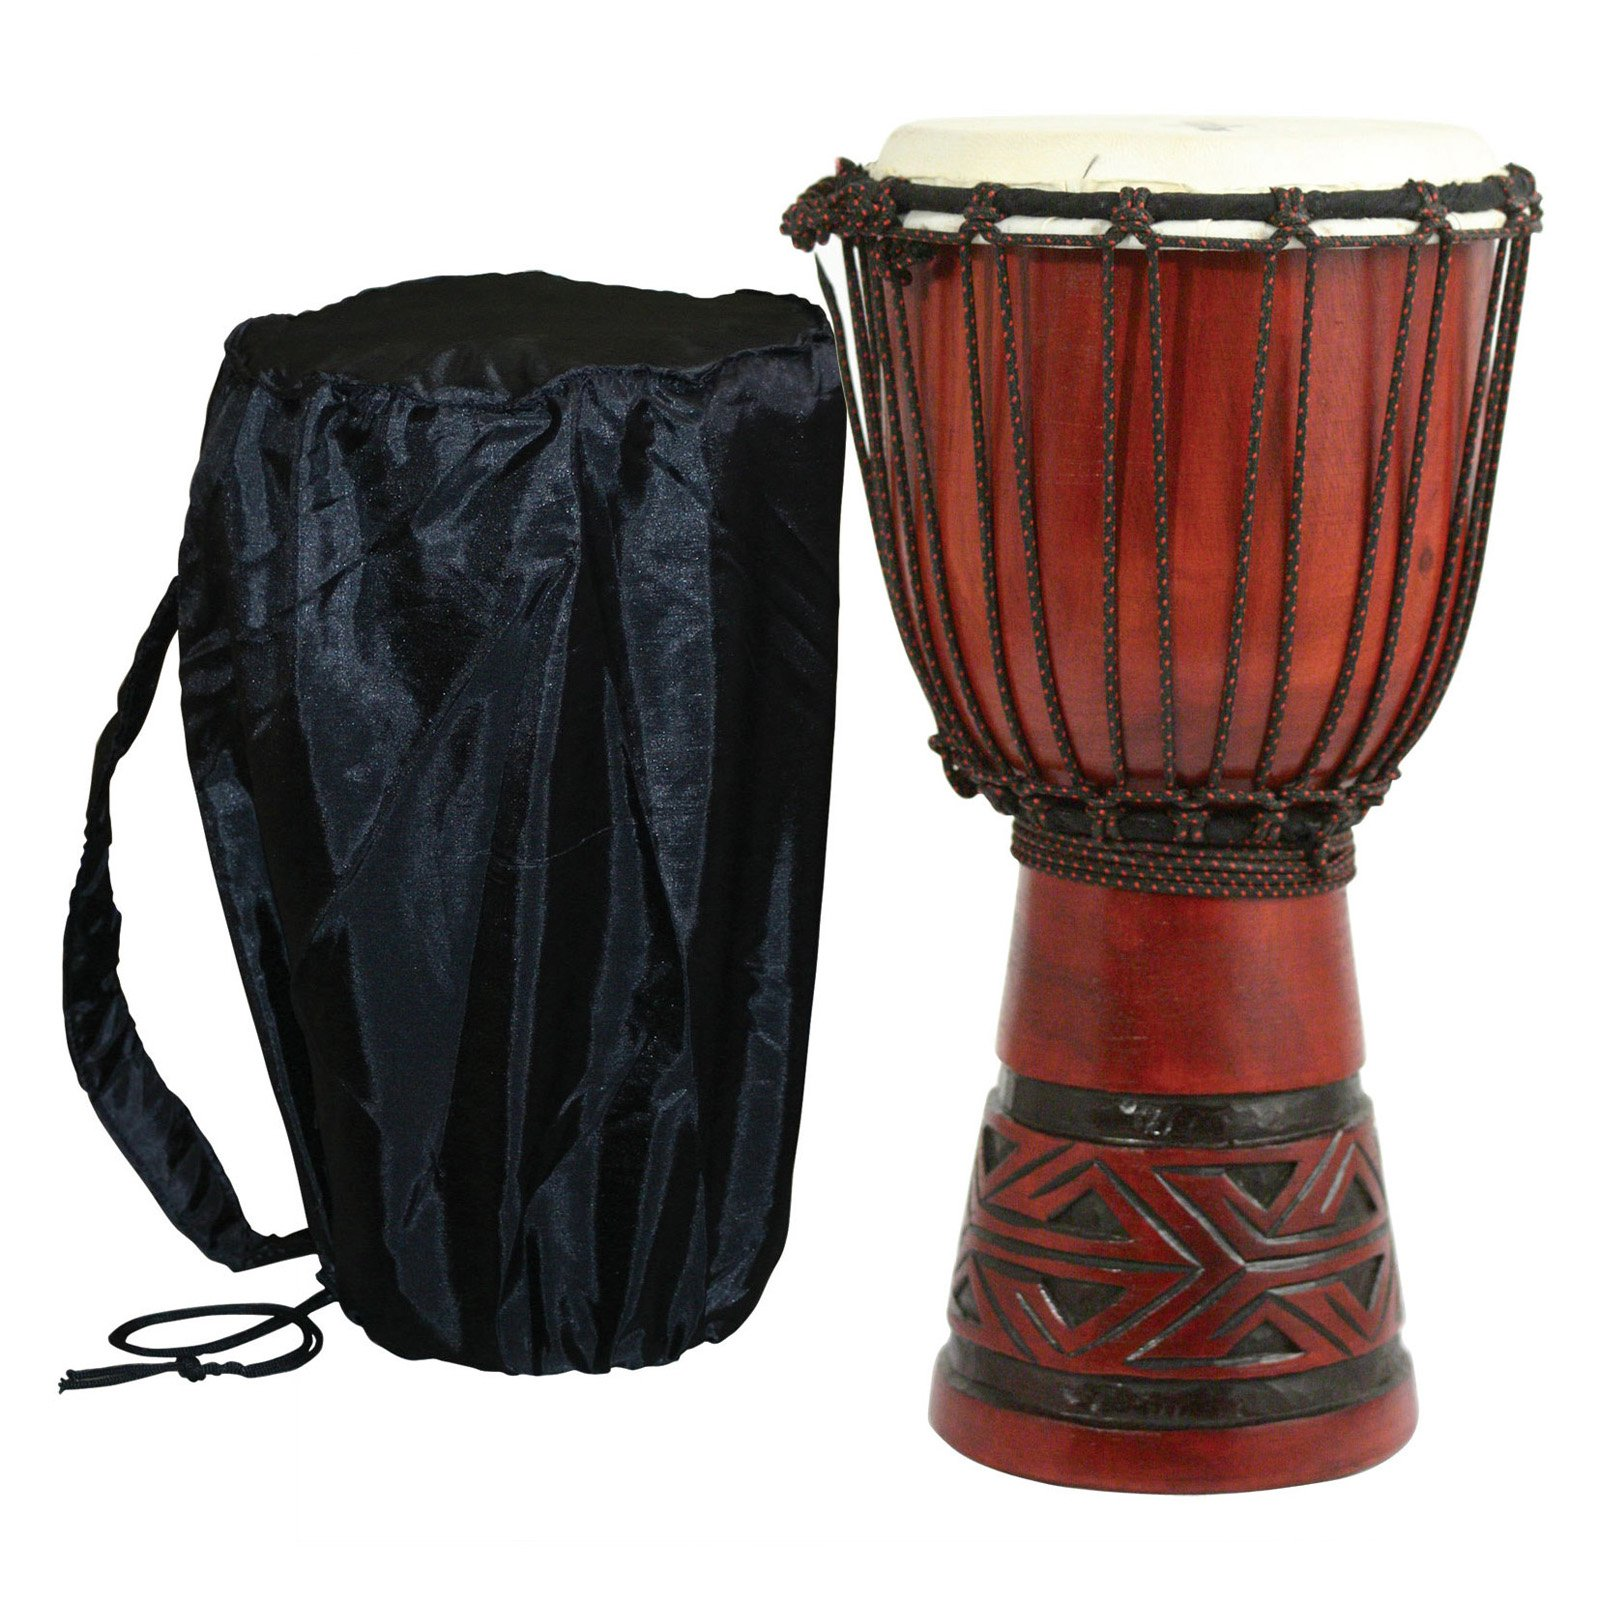 X8 Drums Celtic Labyrinth Djembe Drum with Tote Bag